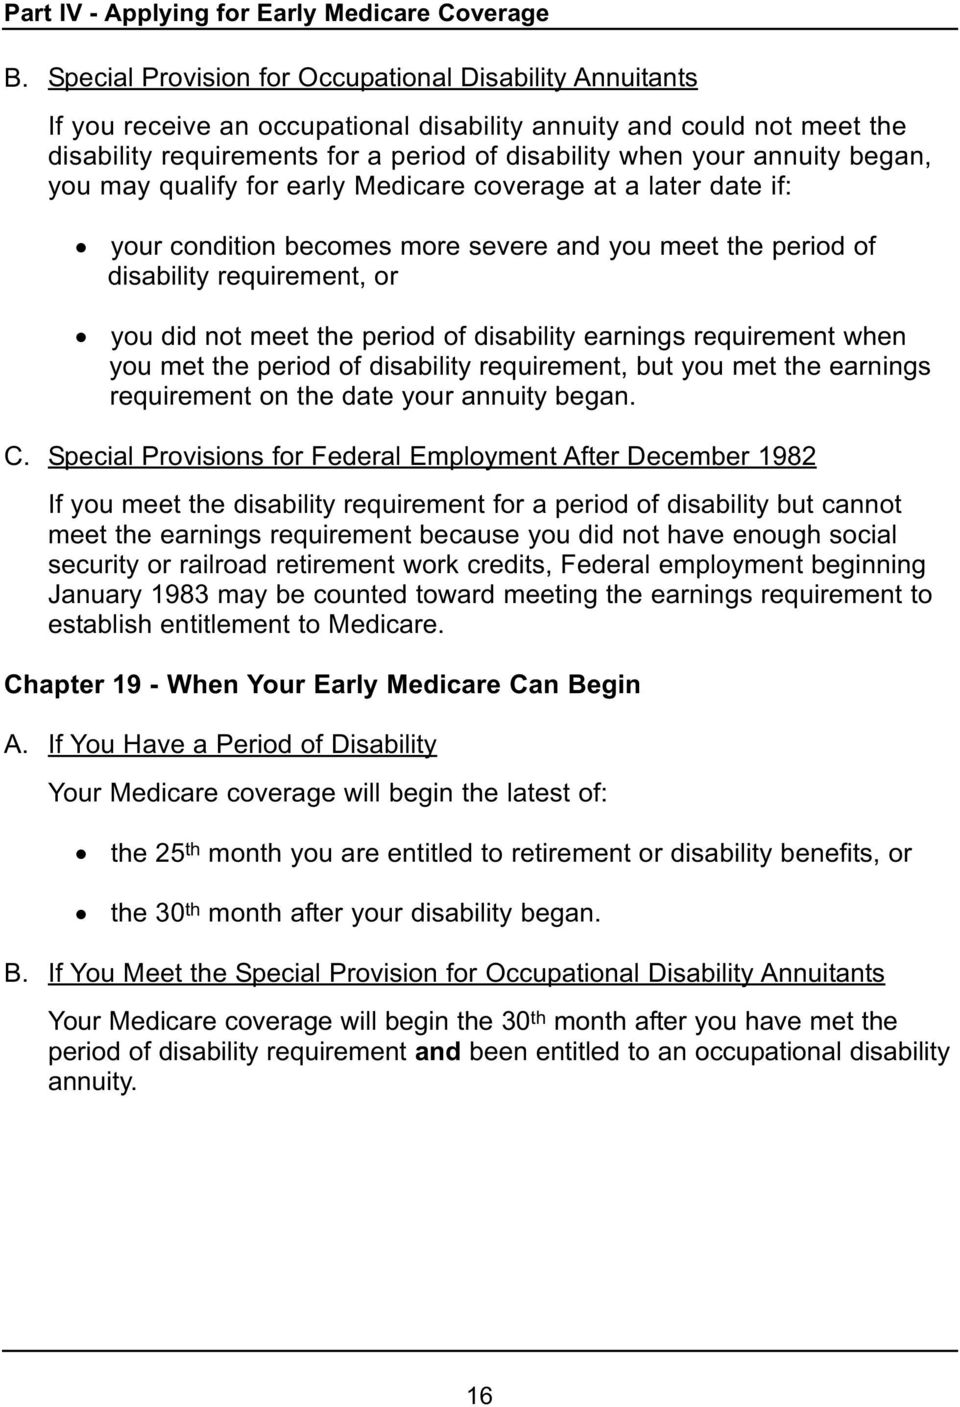 began, you may qualify for early Medicare coverage at a later date if: your condition becomes more severe and you meet the period of disability requirement, or you did not meet the period of